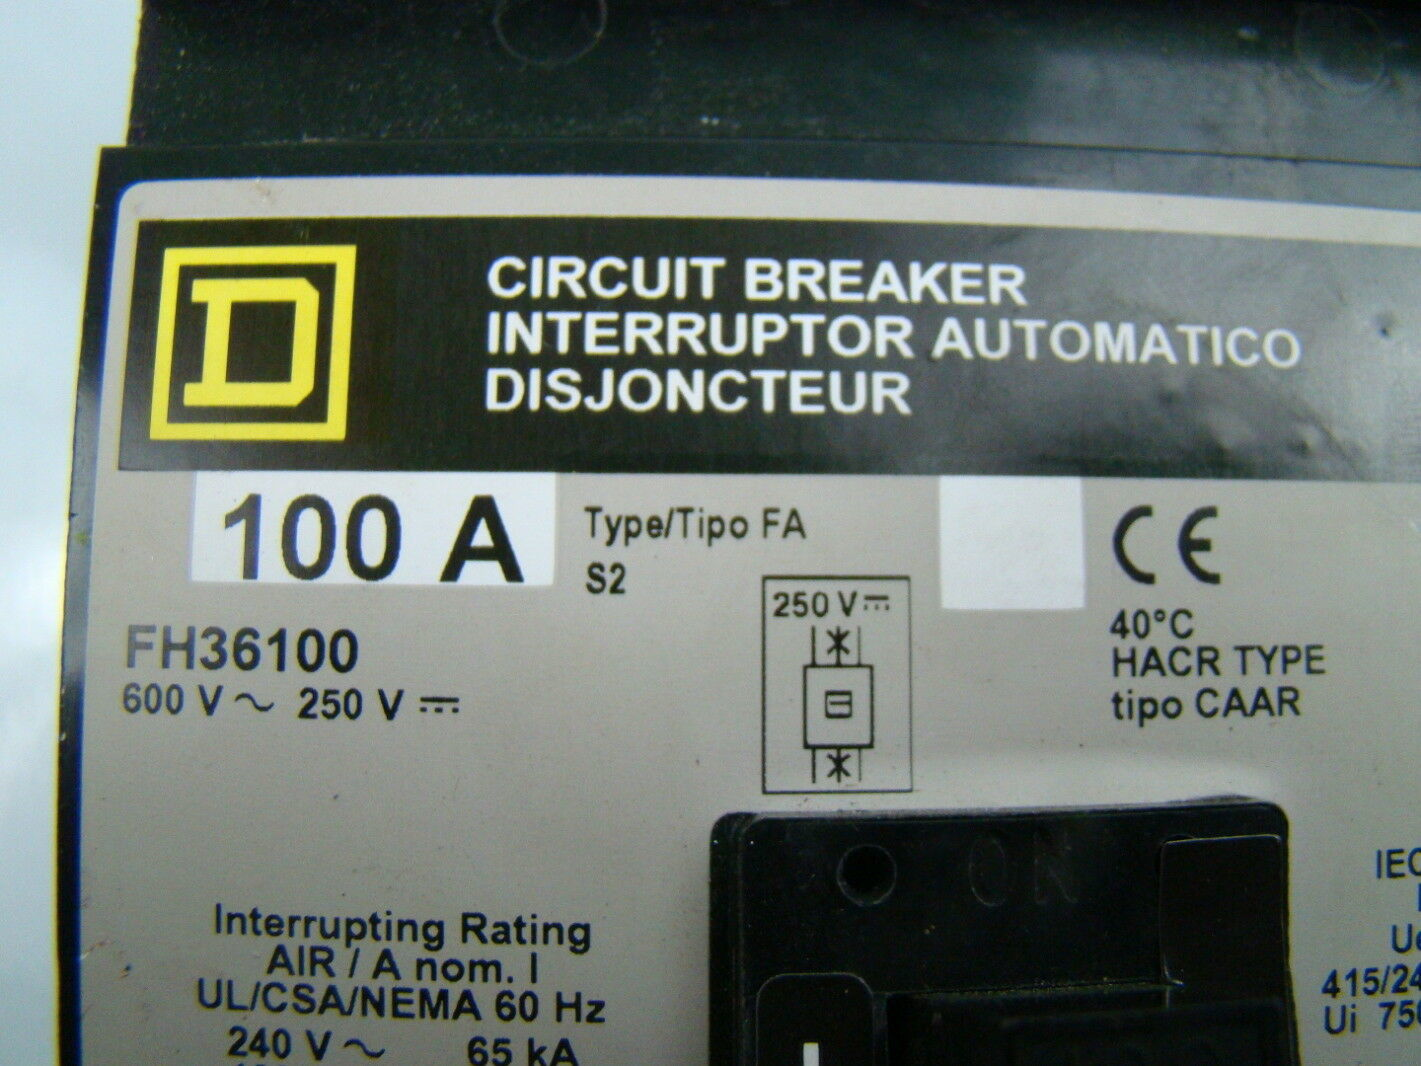 Square D I Line Circuit Breaker 100a 600vax 250vdc Fh36100 Ebay 25a Generator Lot Of 10